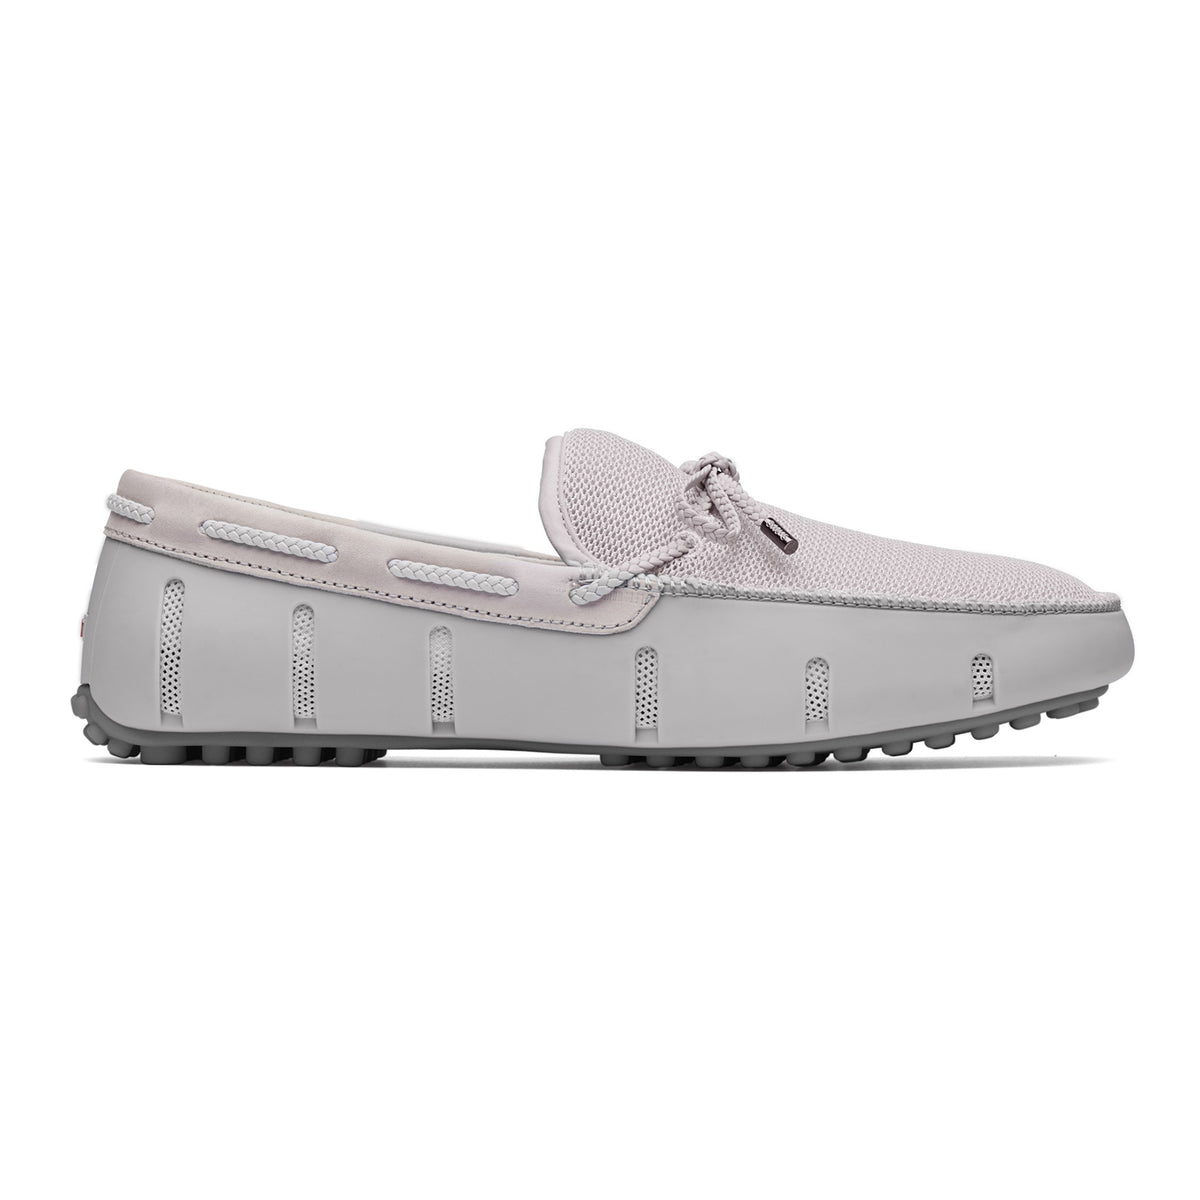 Braided Lace Lux Loafer Driver - background::white,variant::Alloy/Gray